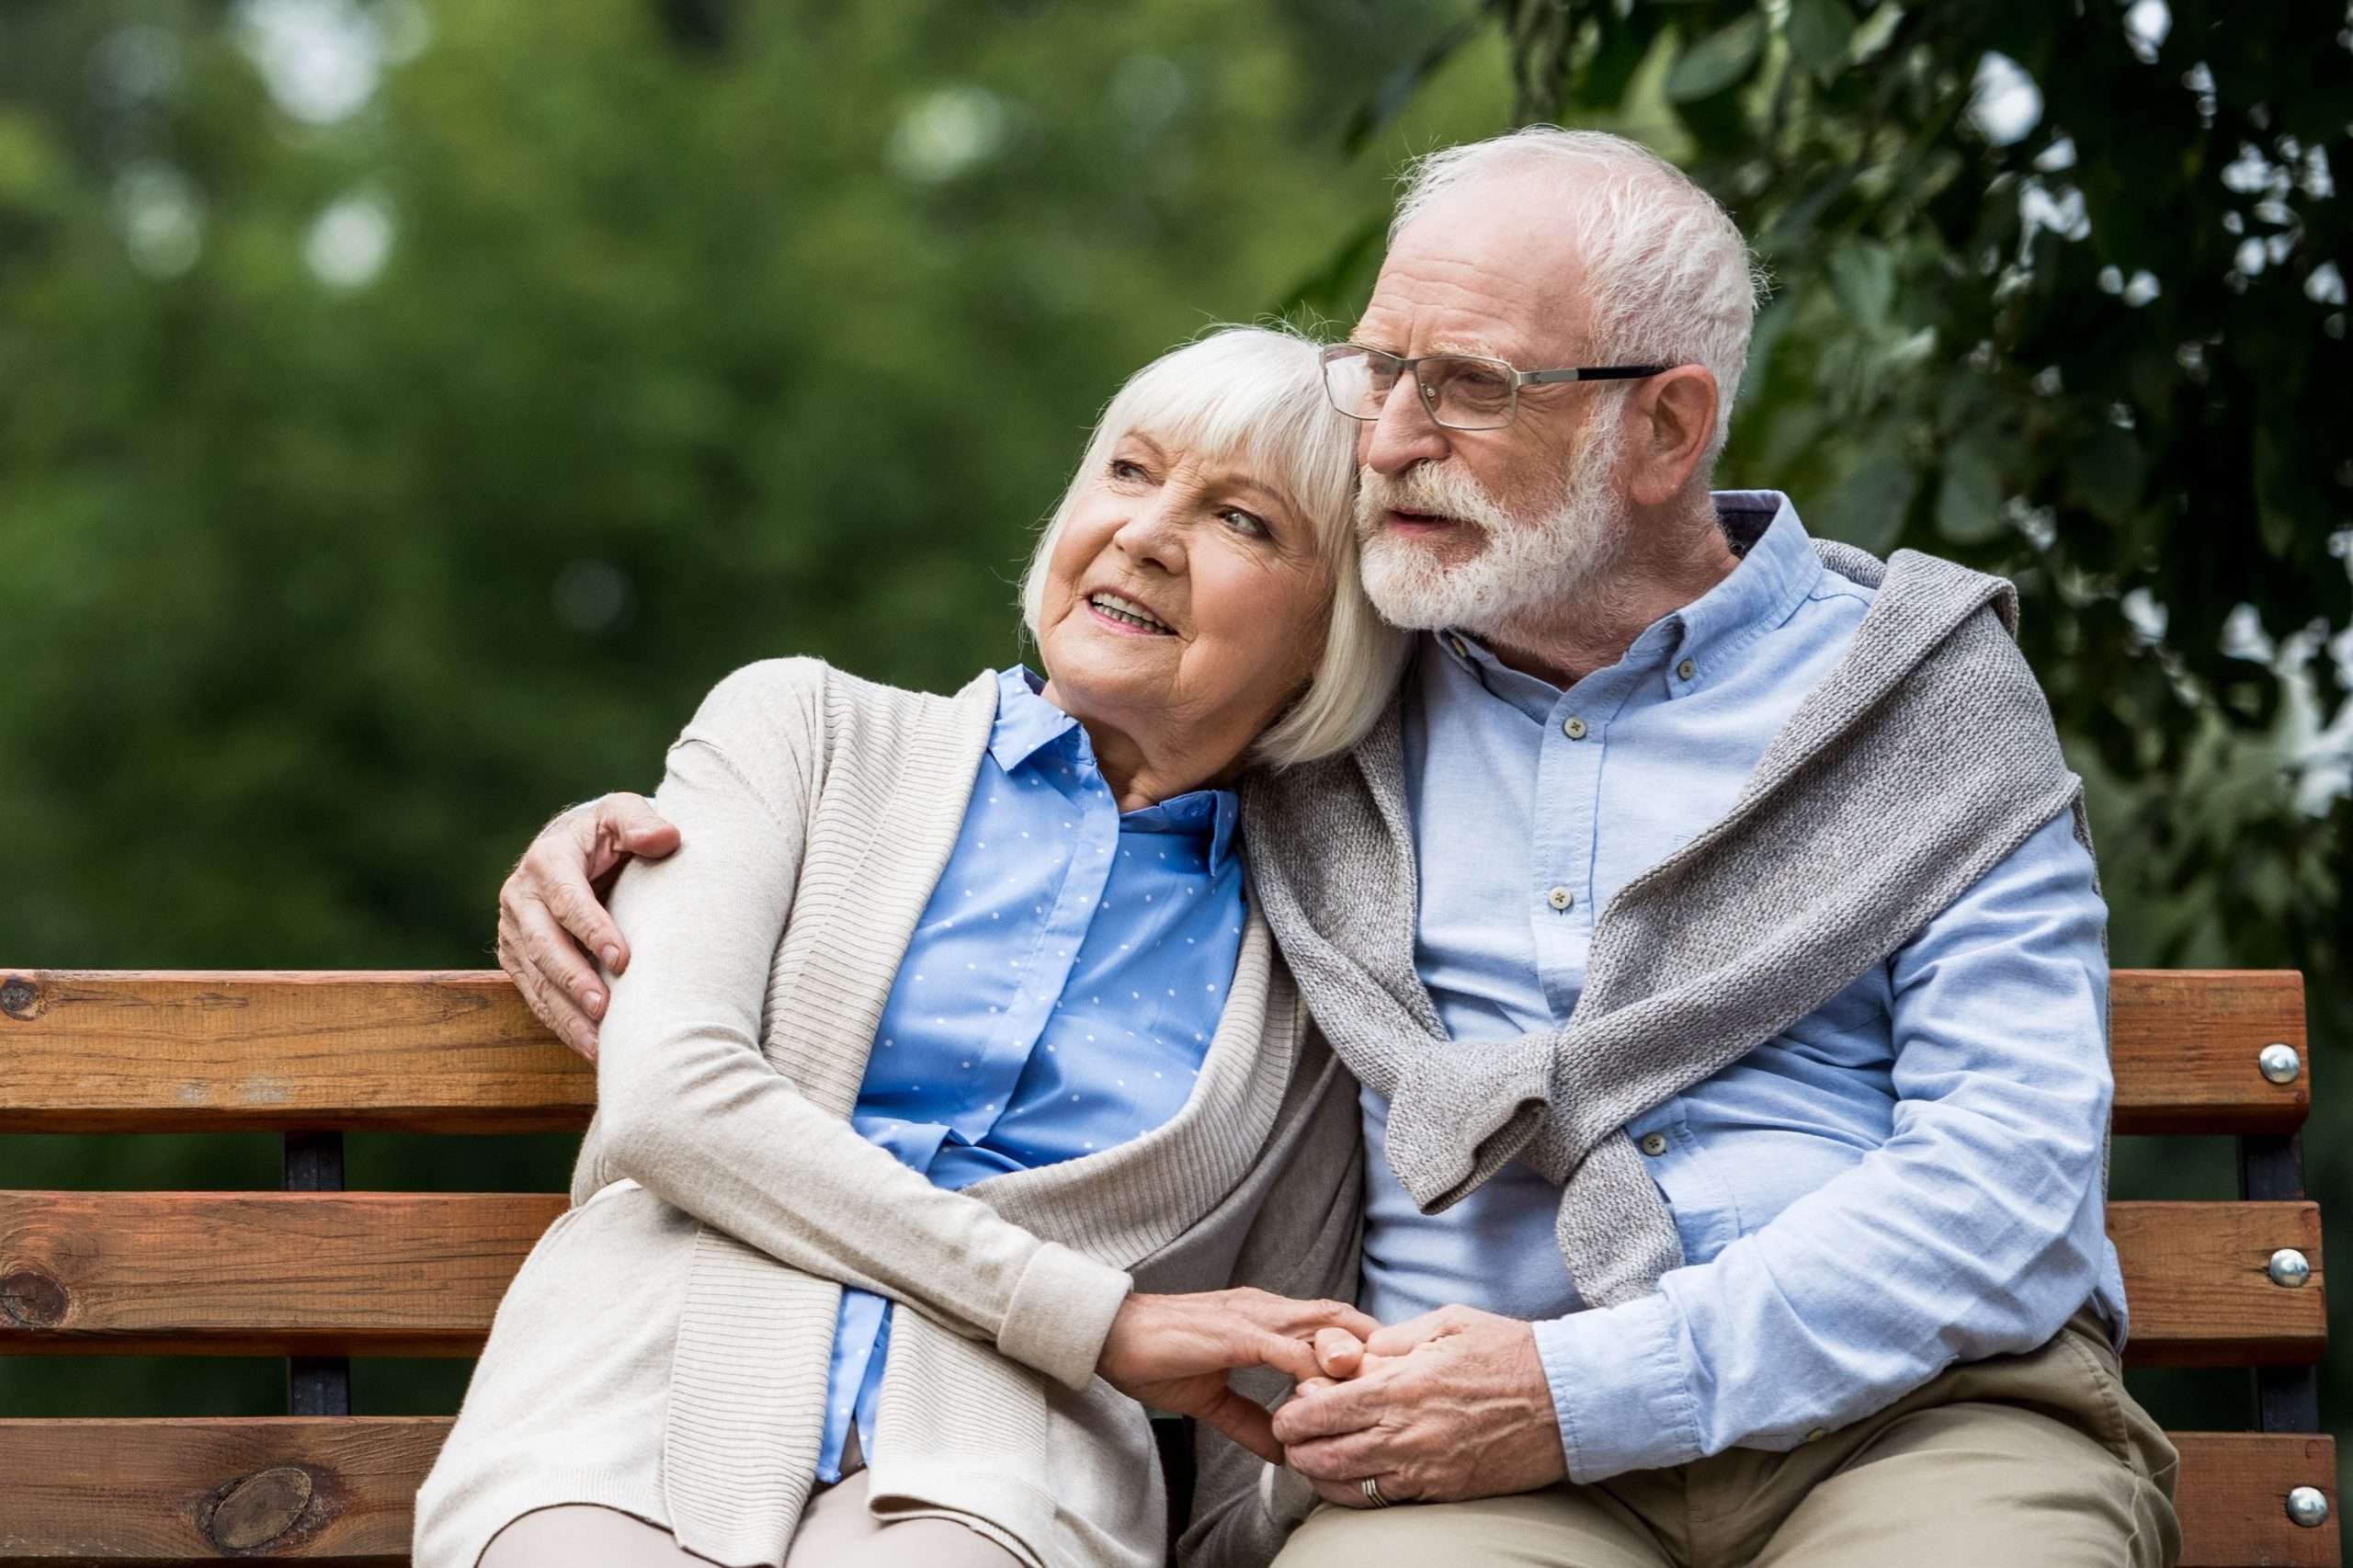 Does Medicare Cover My Spouse?